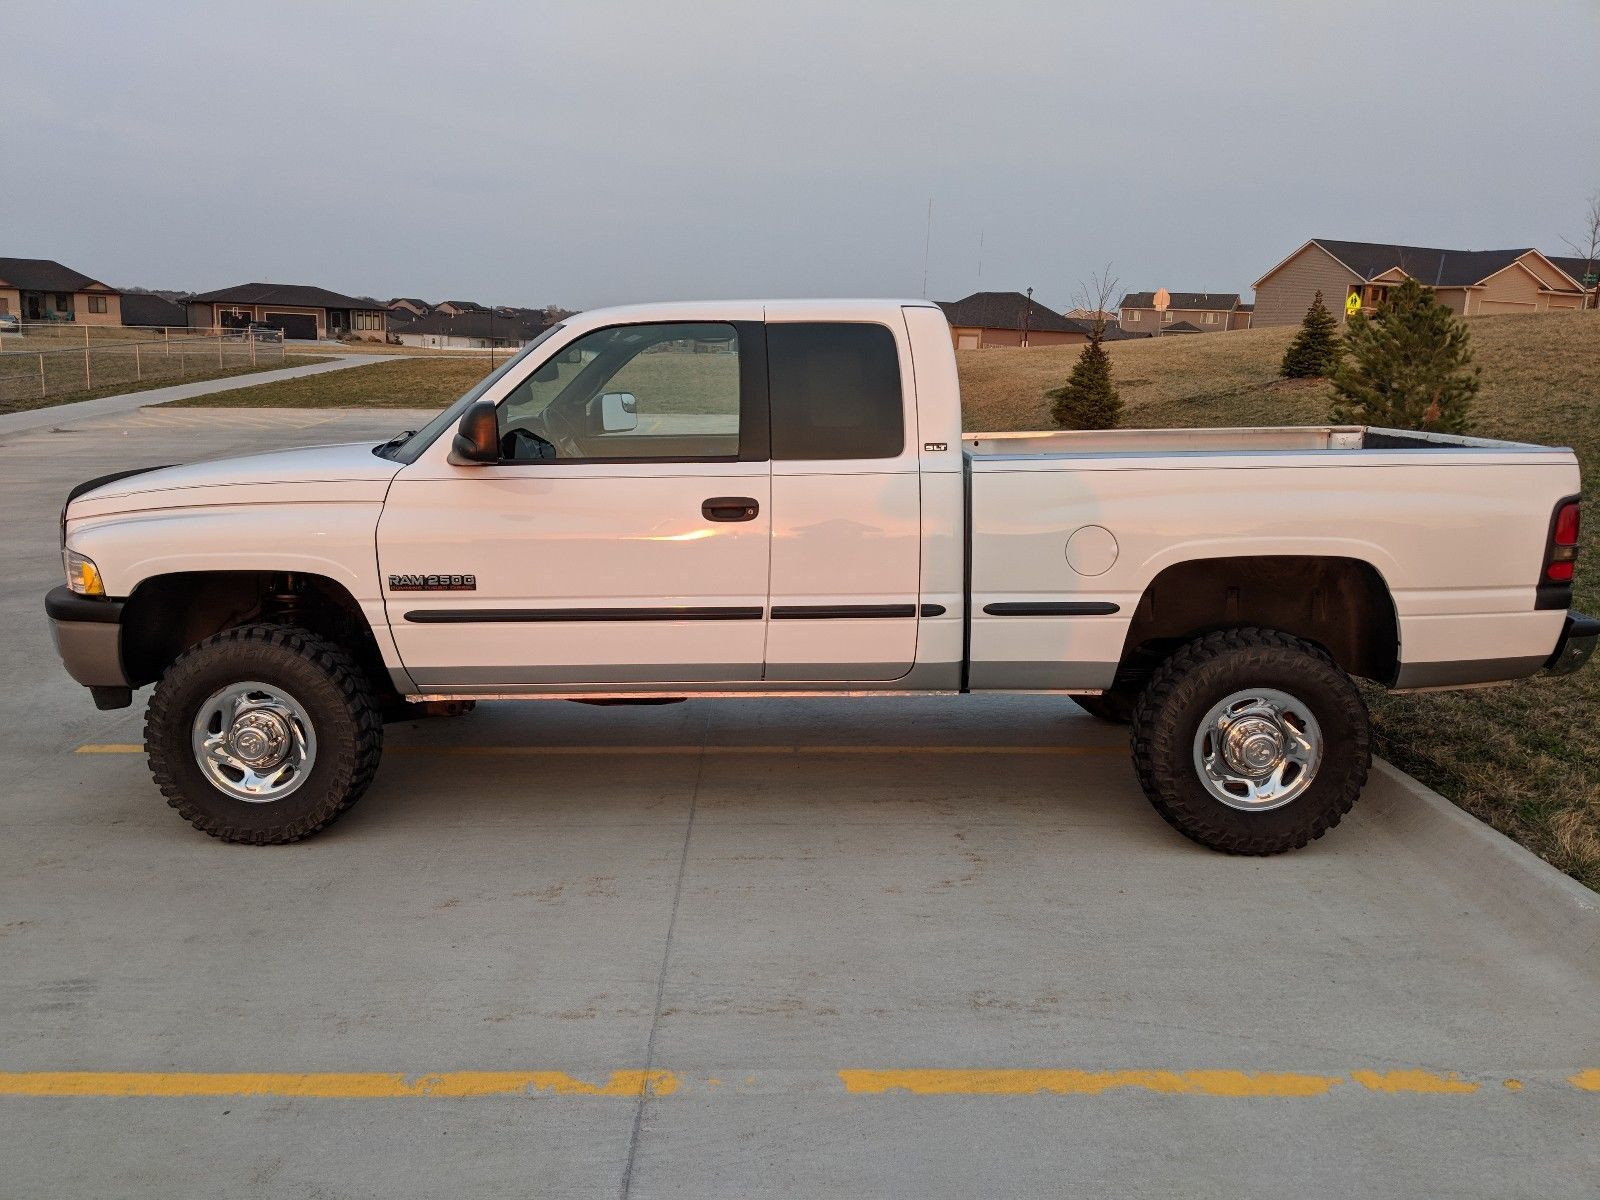 98 dodge ram 2500 awesome find used dodge for sale by owner